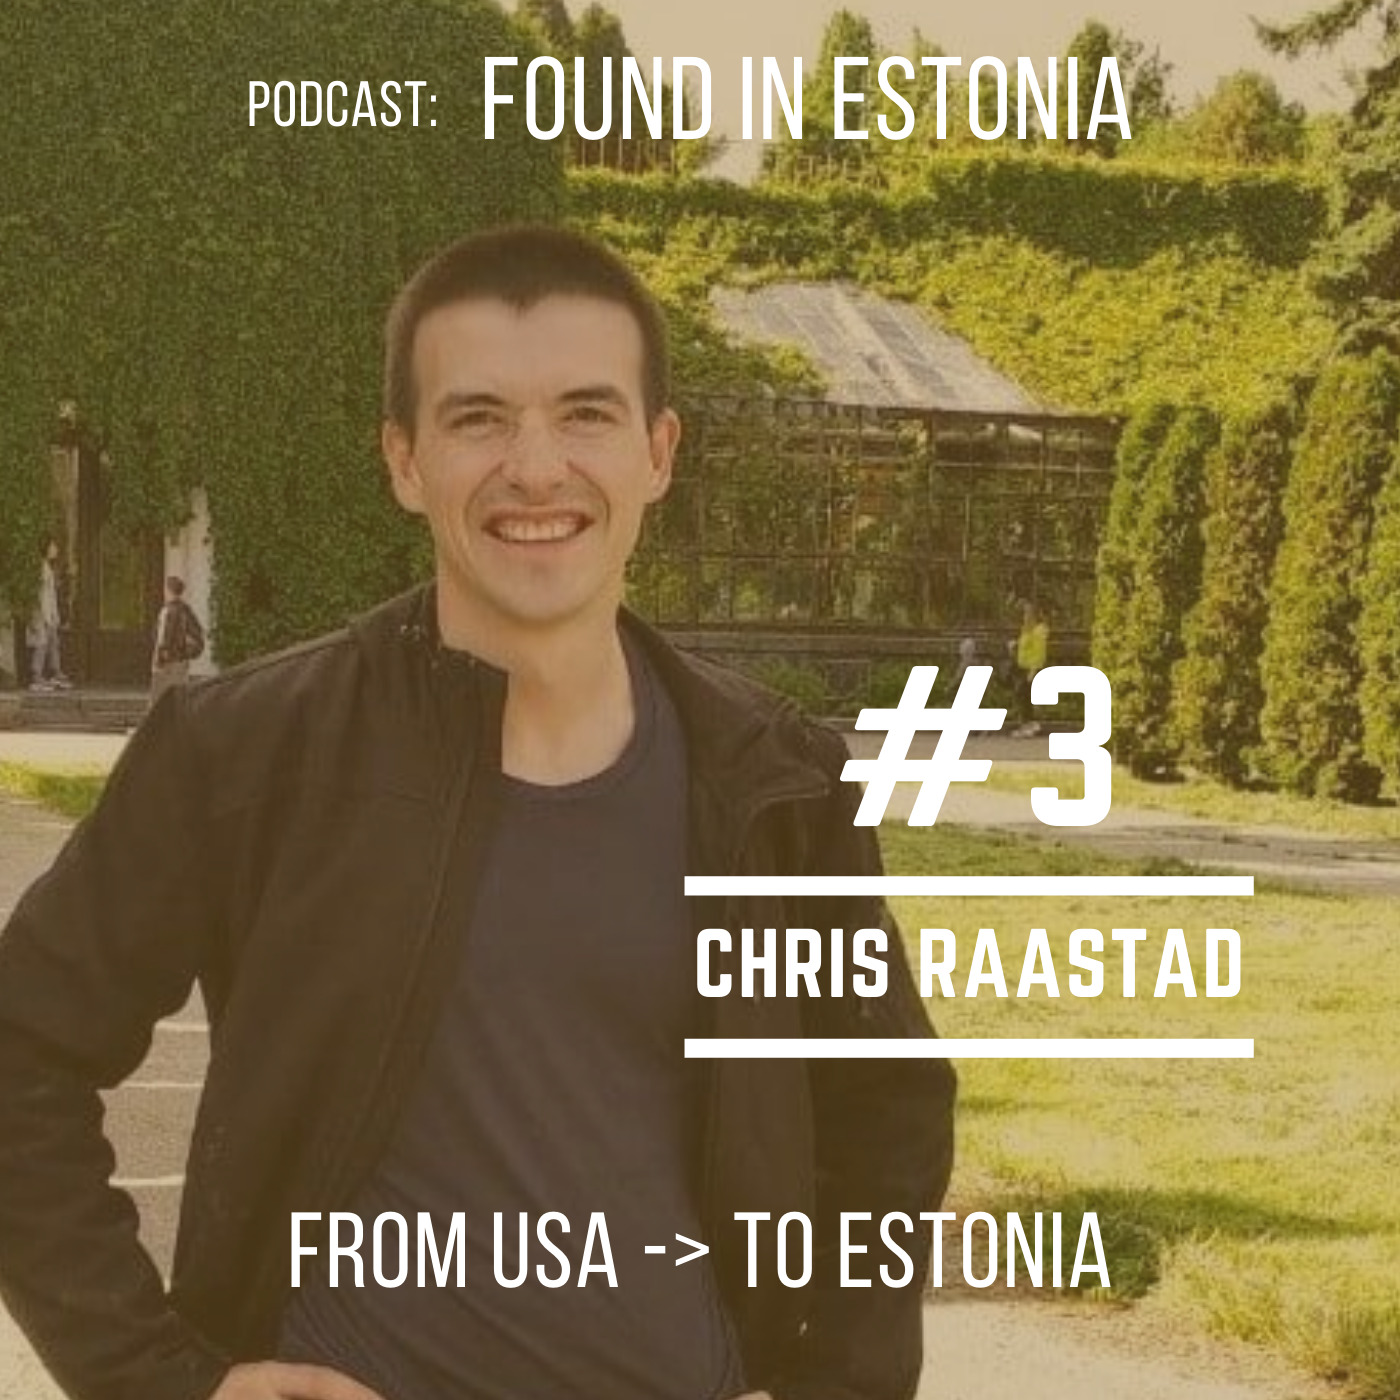 #3 from USA to Estonia - Chris Raastad